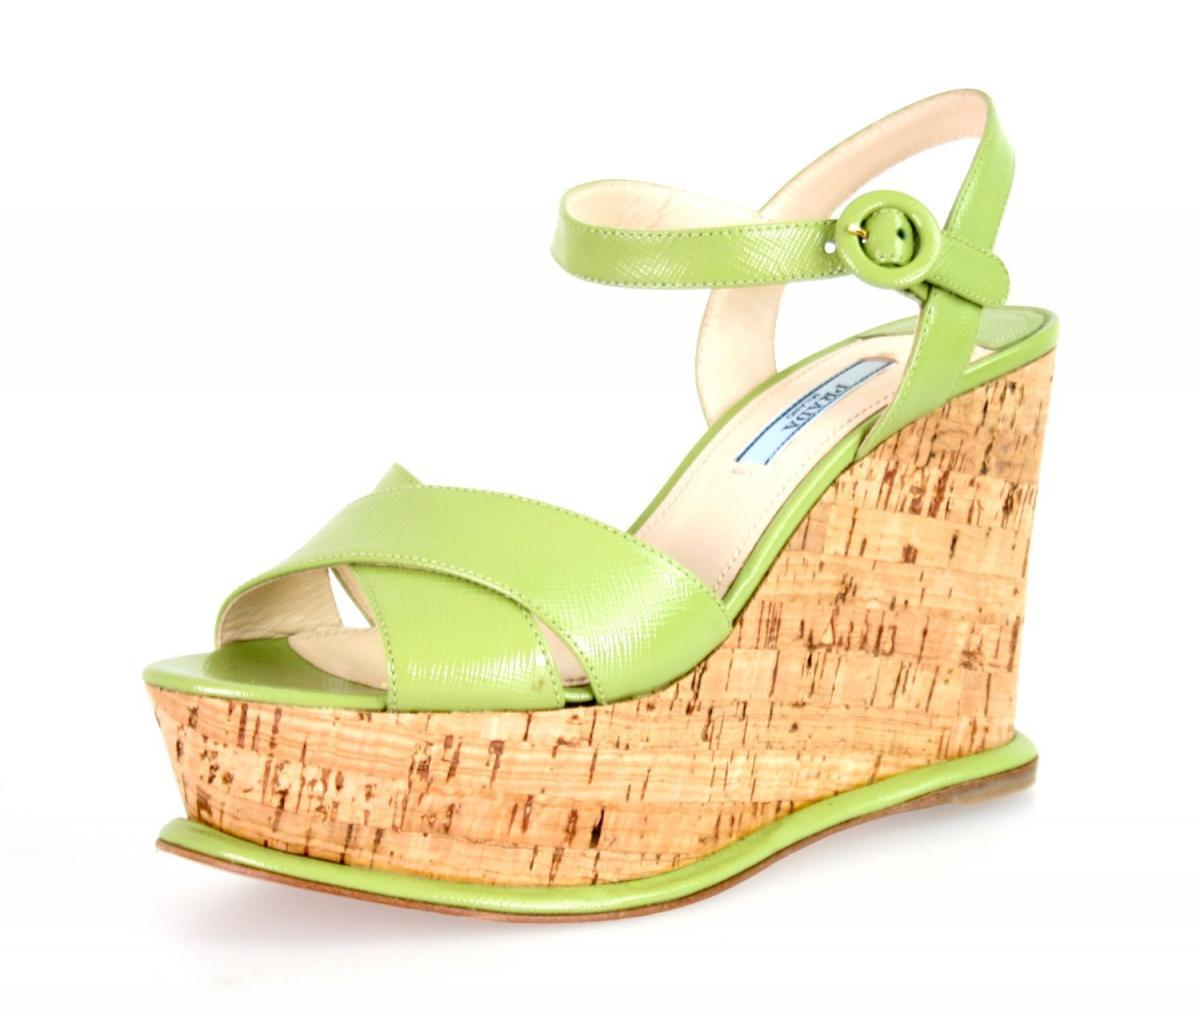 AUTHENTIC LUXURY PRADA SANDALS 1XZ265 vert vert vert NEW US 7.5 EU 37,5 38 57906e